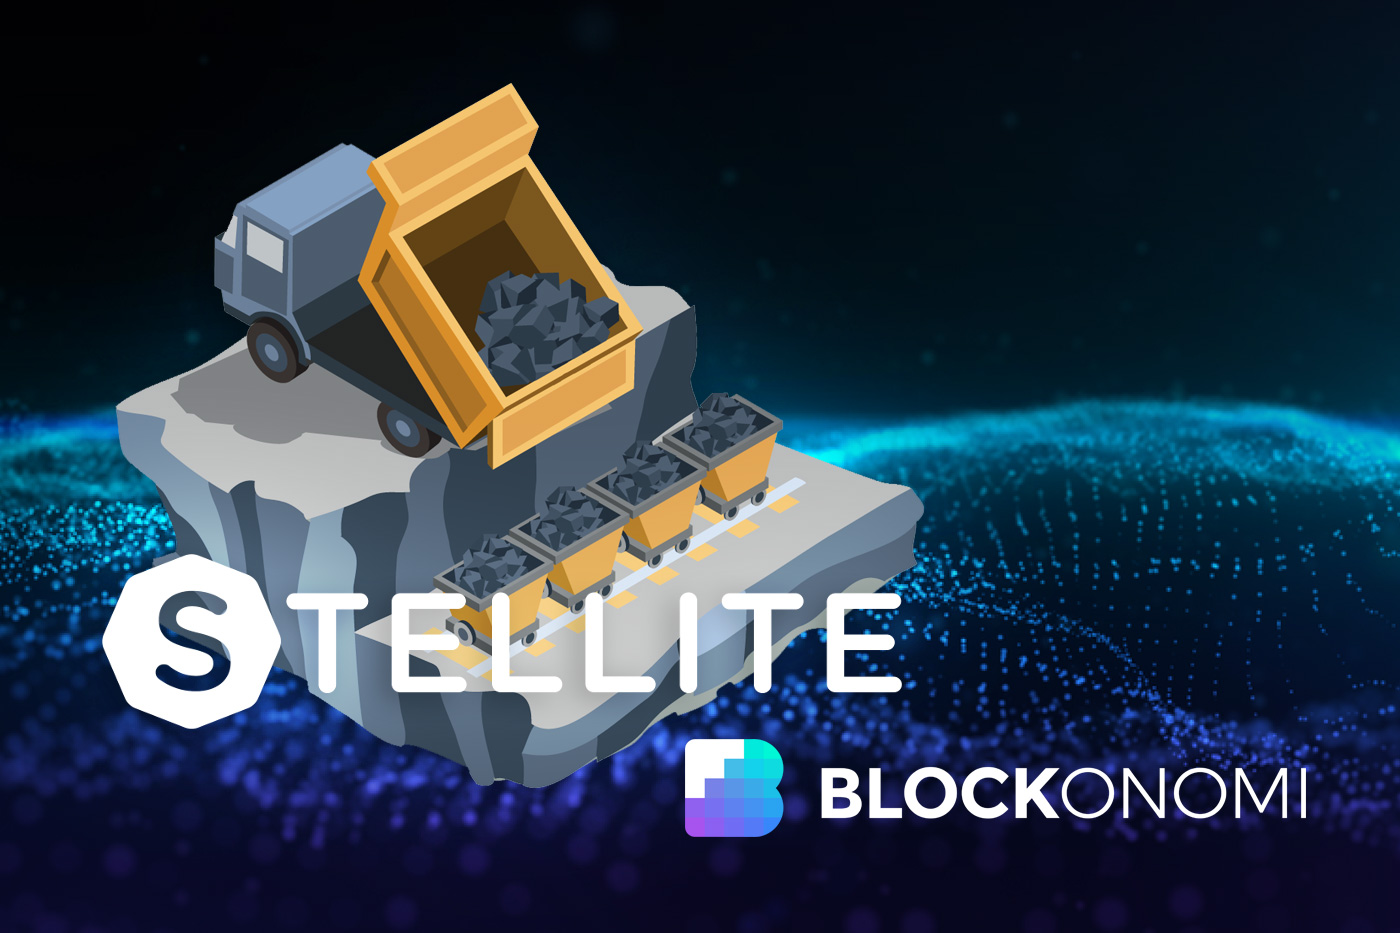 How to Mine Stellite